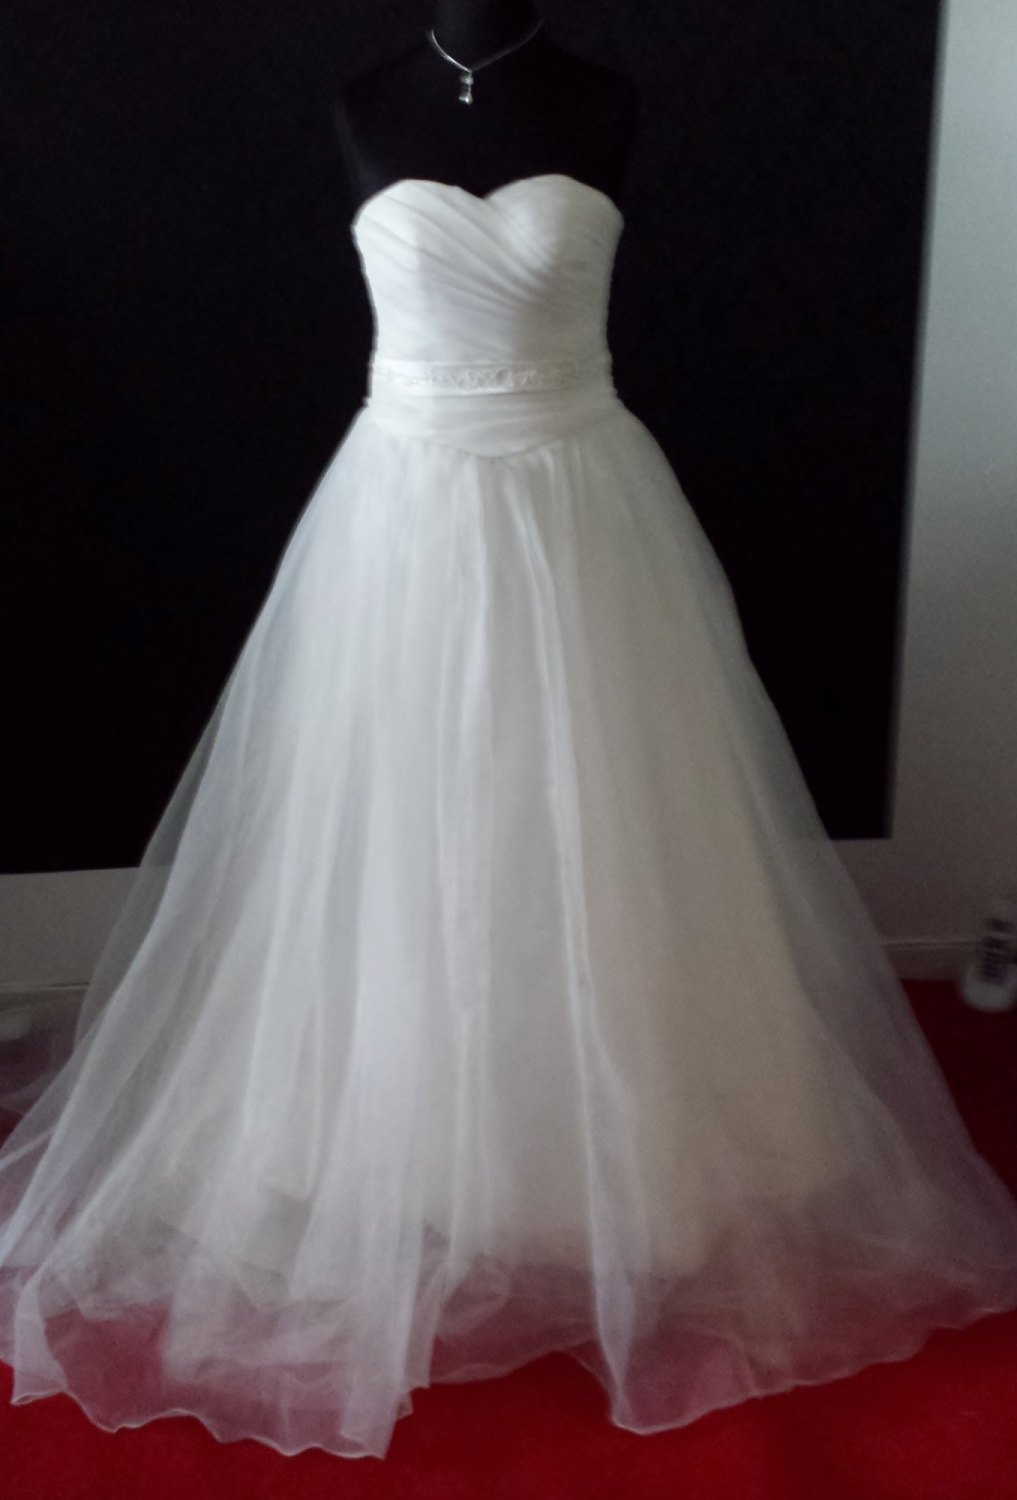 NEW Unbranded Off White Strapless Wedding Gown - Size 12/14